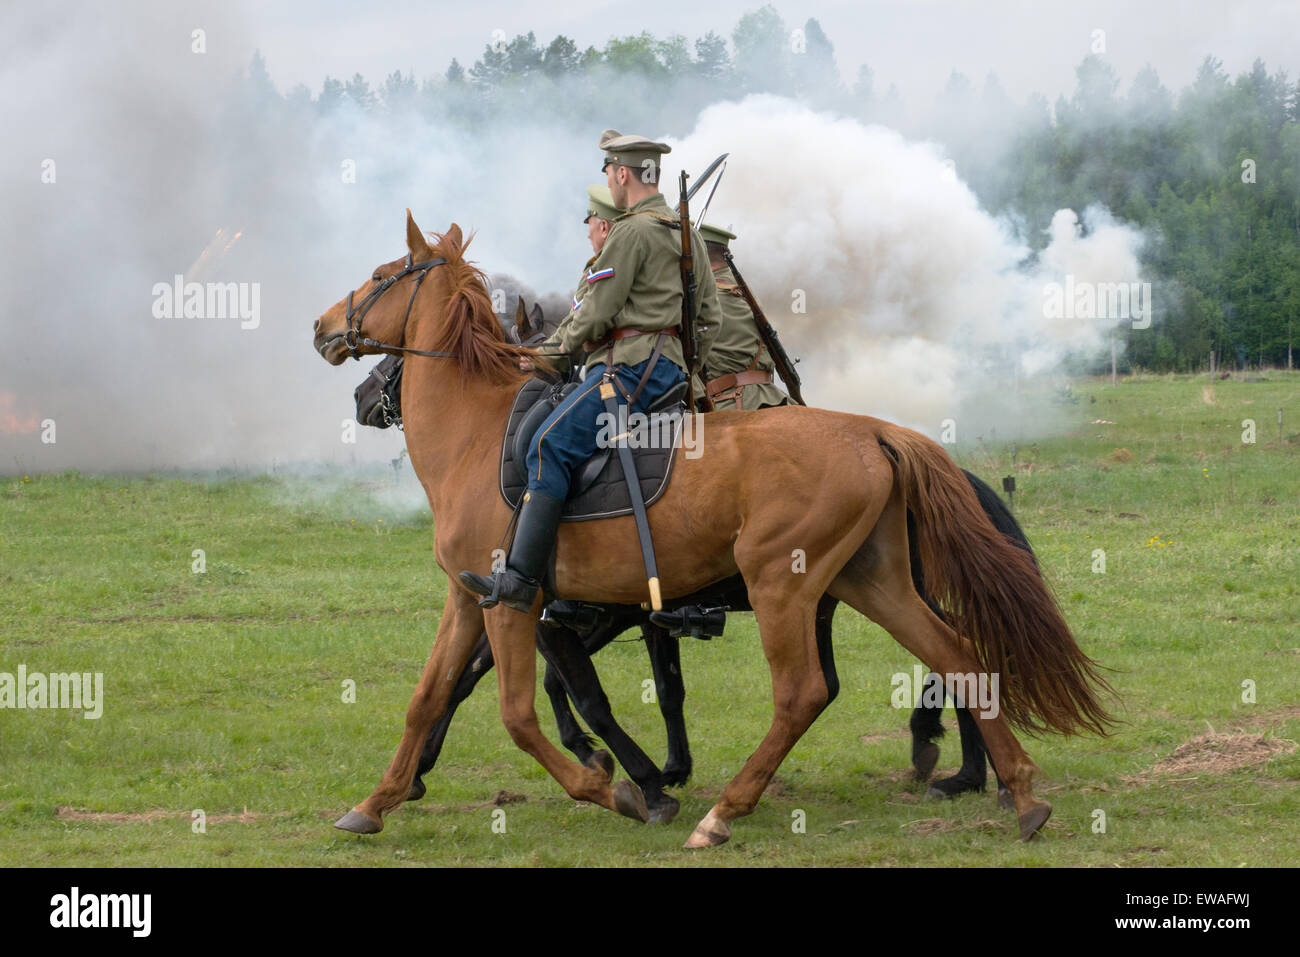 RUSSIA, CHERNOGOLOVKA - MAY 17: Cavalry soldiers ride on History reenactment of battle of Civil War in 1914-1919 - Stock Image